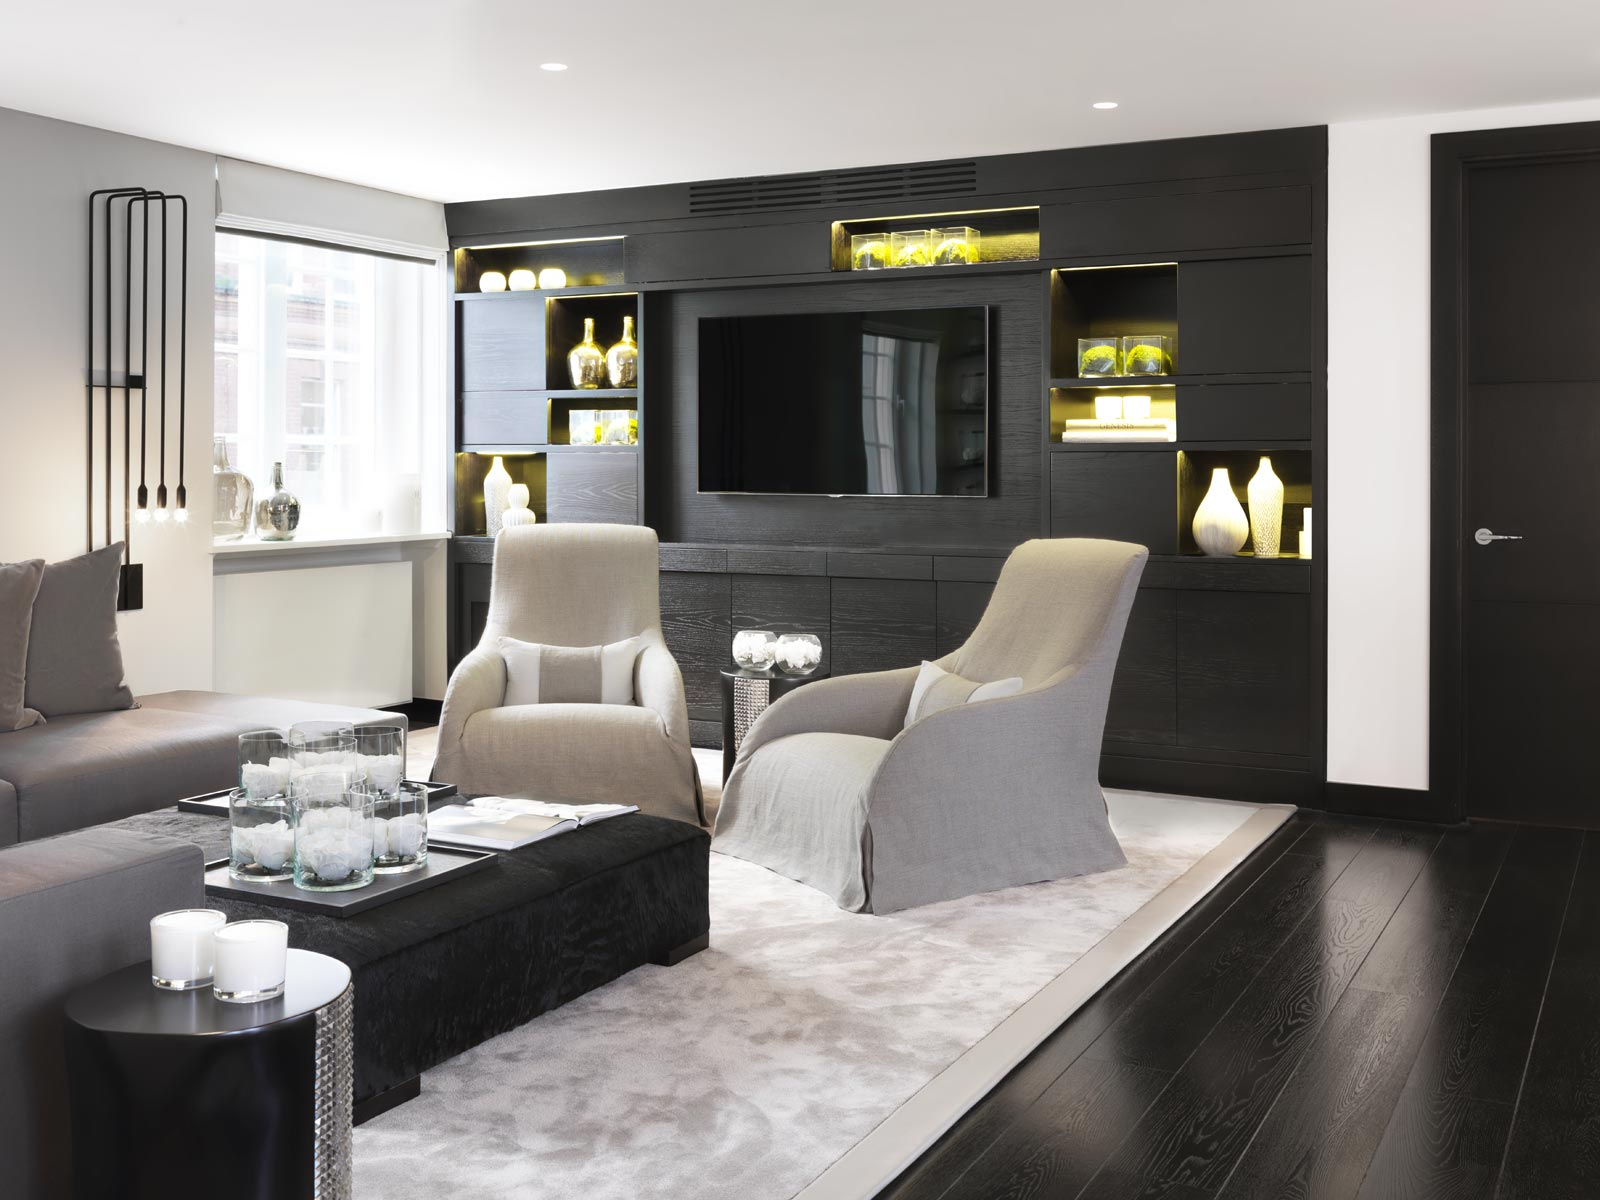 Contemporary living room design kelly hoppen Top 10 Kelly Hoppen Design Ideas pied a terre london3